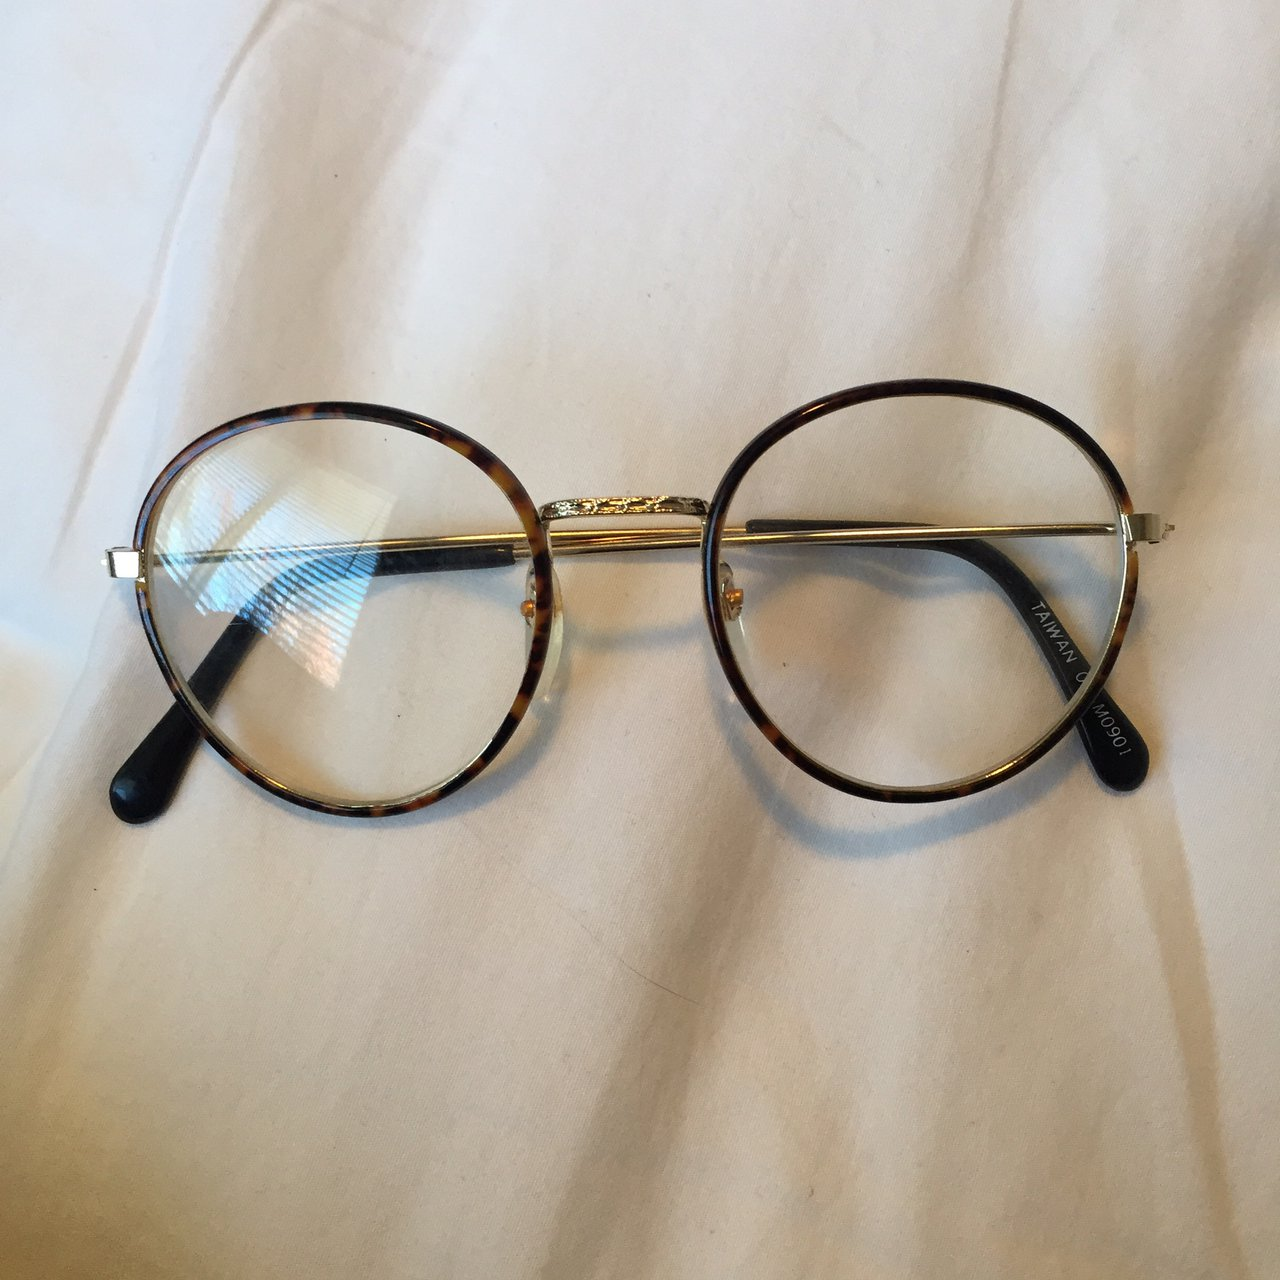 85f8c955c5 Urban Outfitters Glasses    clear plastic lens